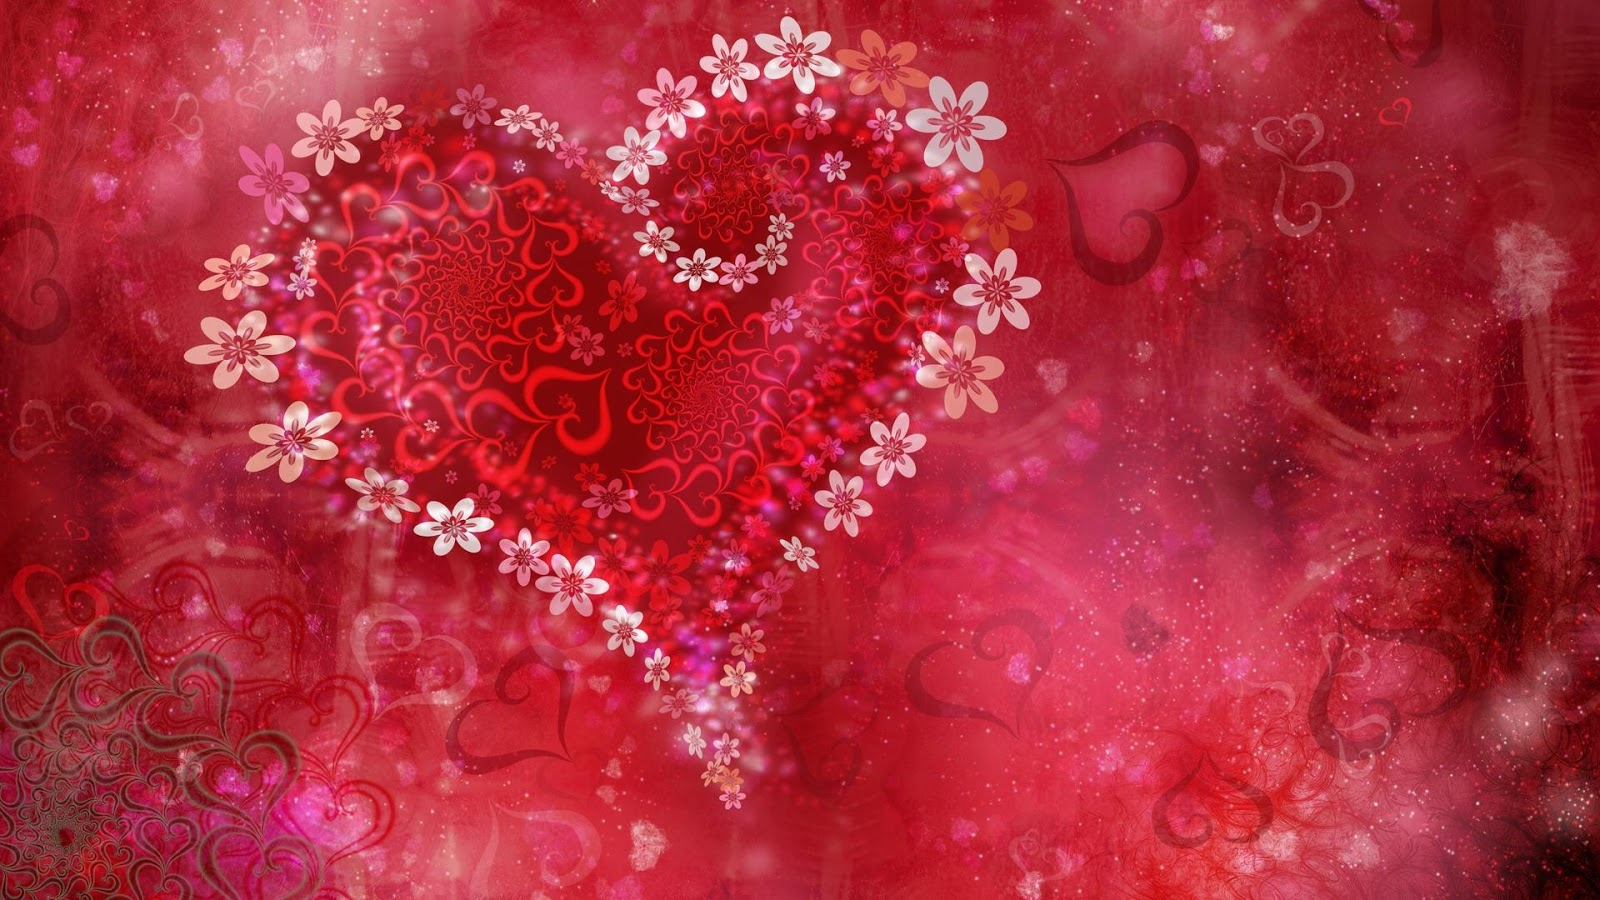 Heart Love Background Wallpaper Hearts Love Best 2 Travel Wallpaper